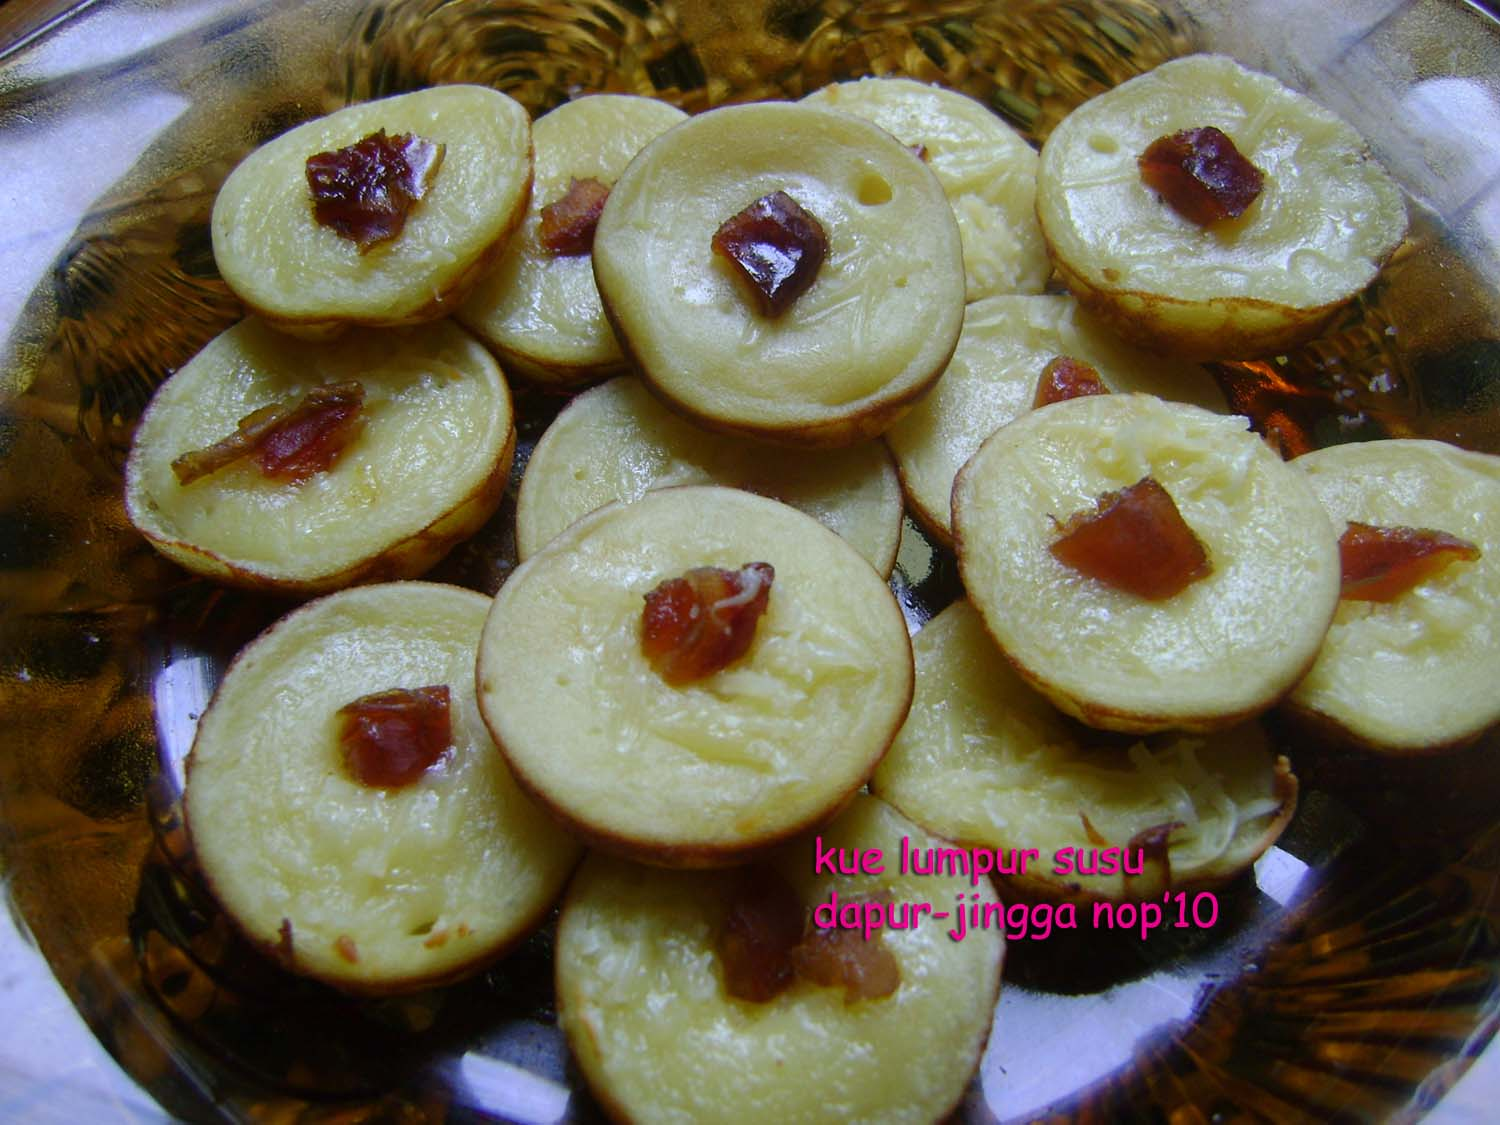 kue bisnisukm comment on this picture kue lumpur kentang susu